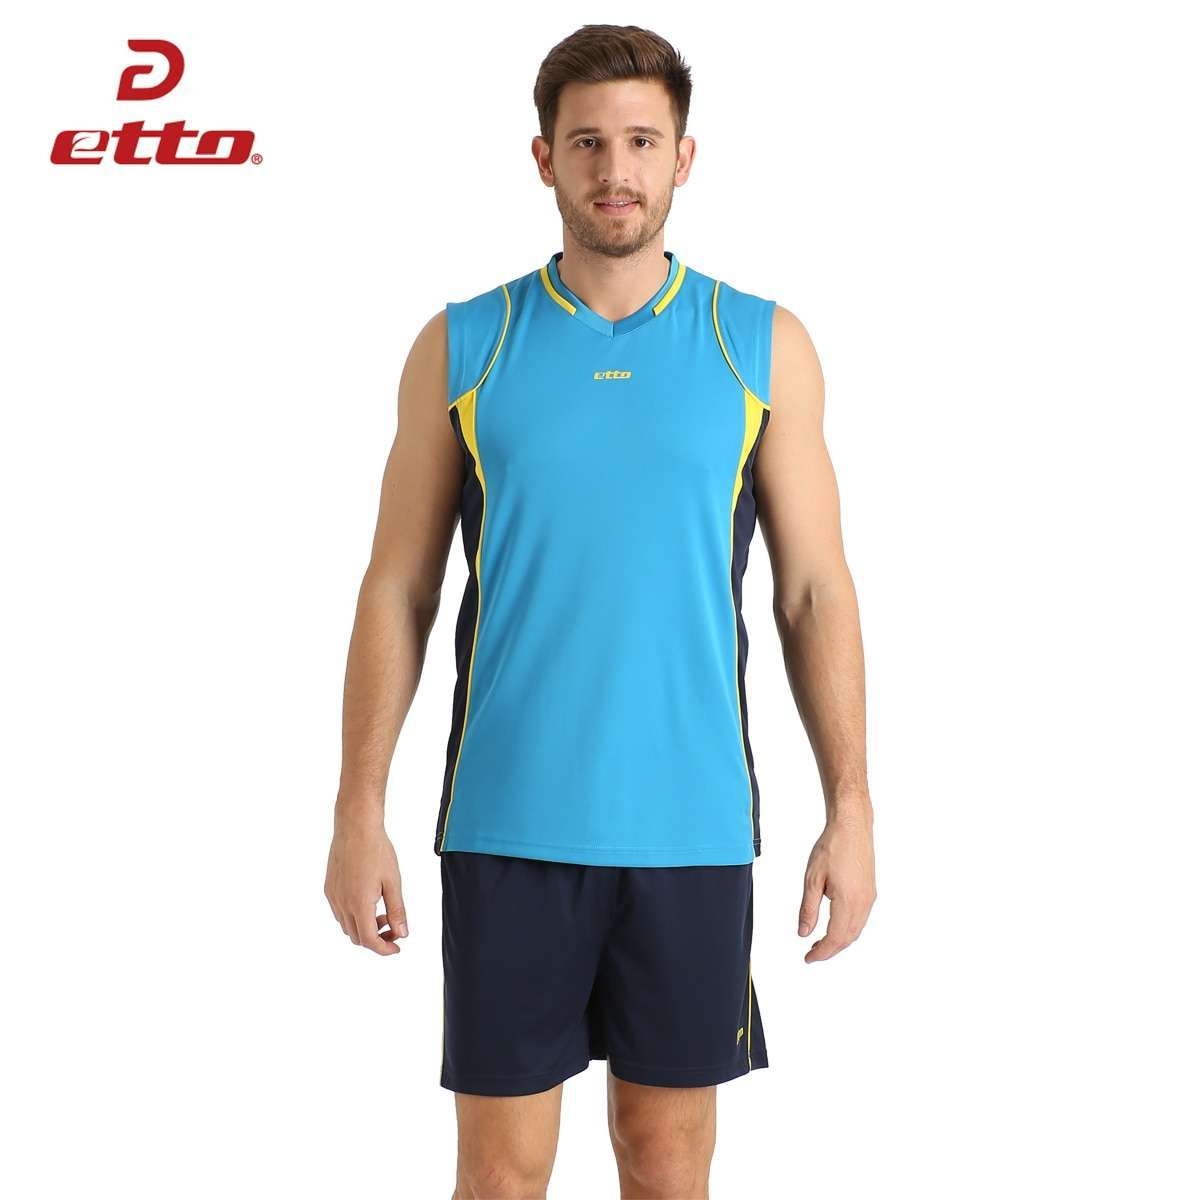 Etto Professional Men Sleeveless Volleyball Set Team Uniforms Breathable Quick dry Volleyball Jersey Suit Sportswear HXB002